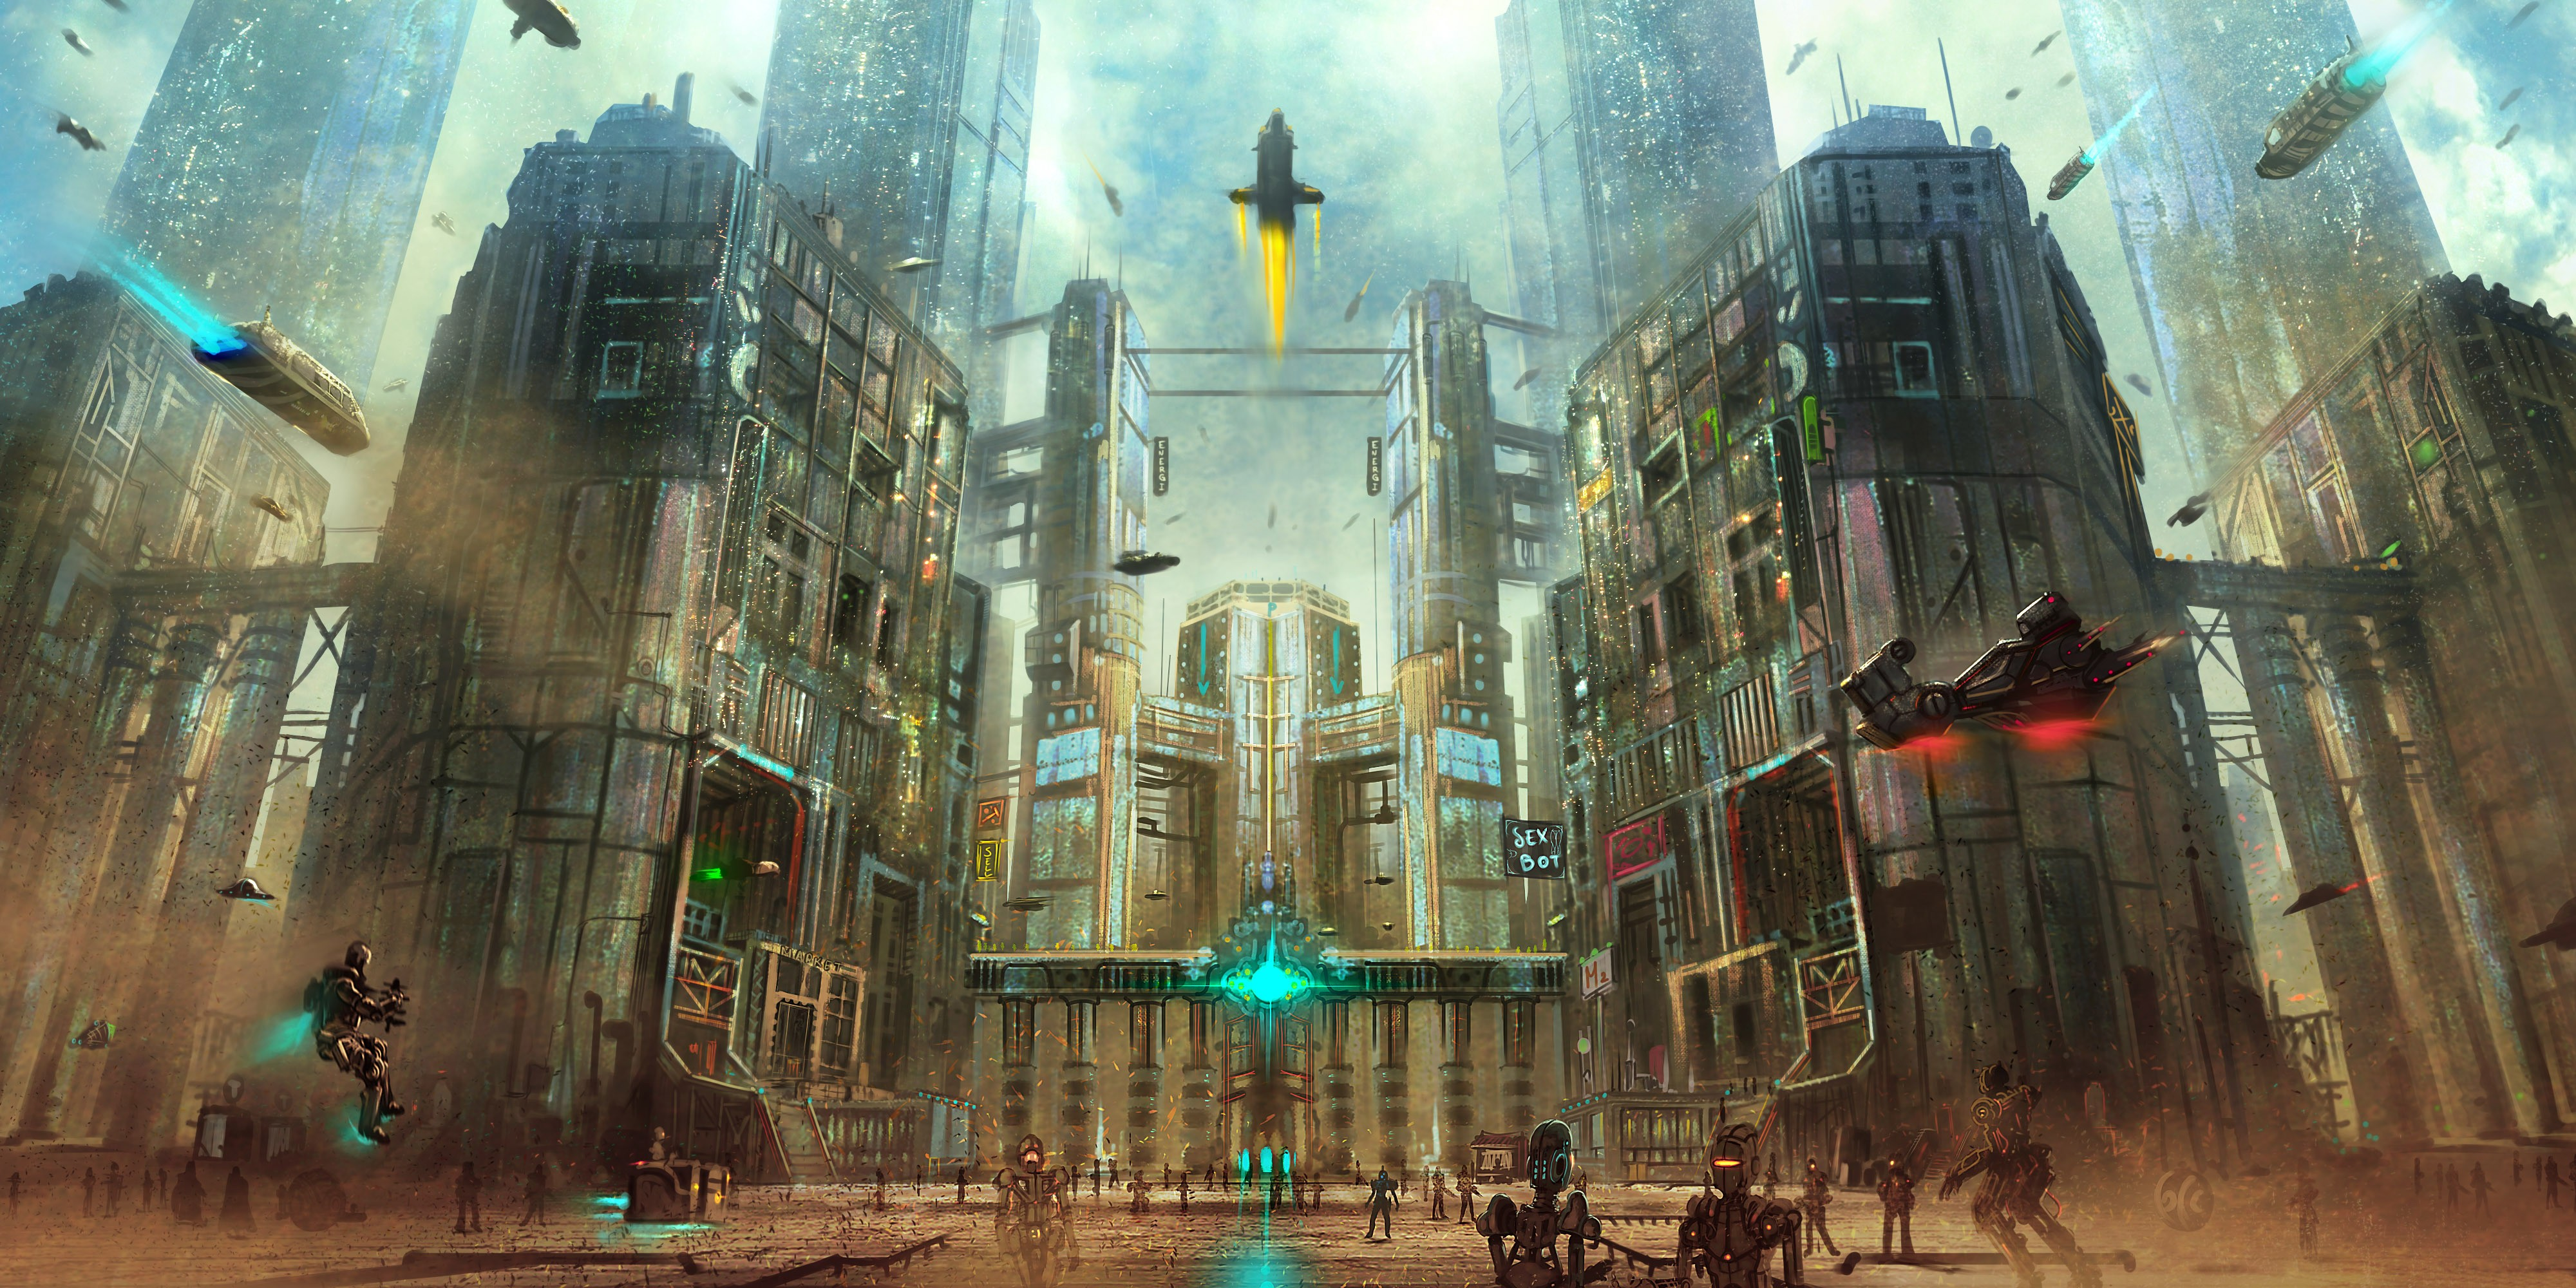 artwork robot city futuristic spaceship wallpapers hd desktop and mobile backgrounds